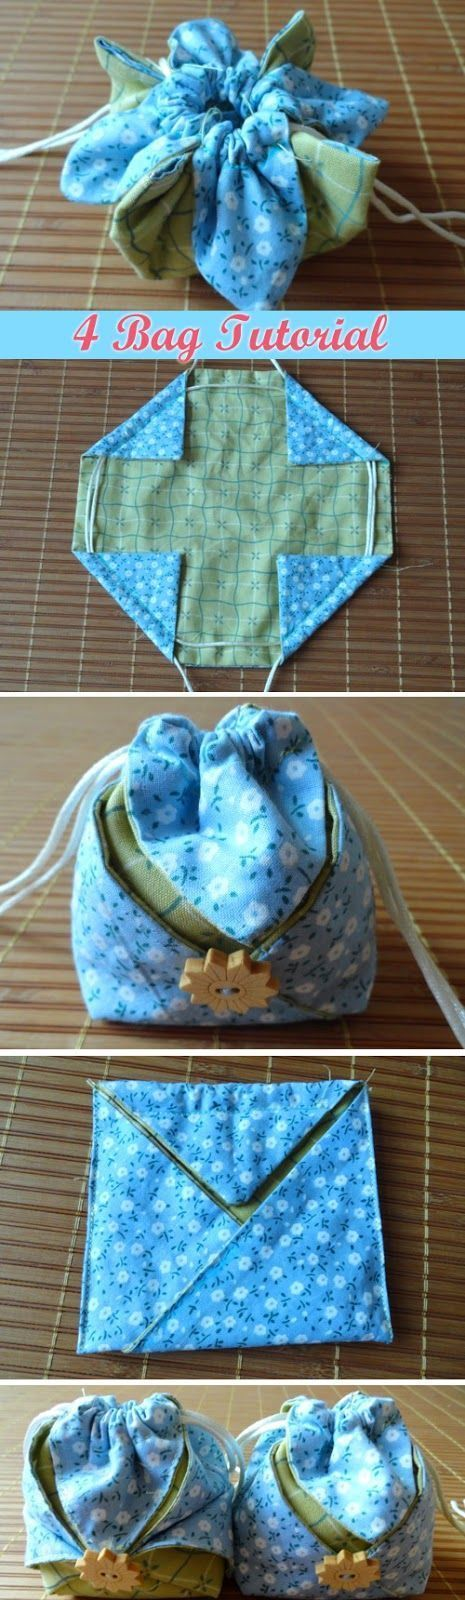 Omiyage Gift Pouch. 4 Tutorial